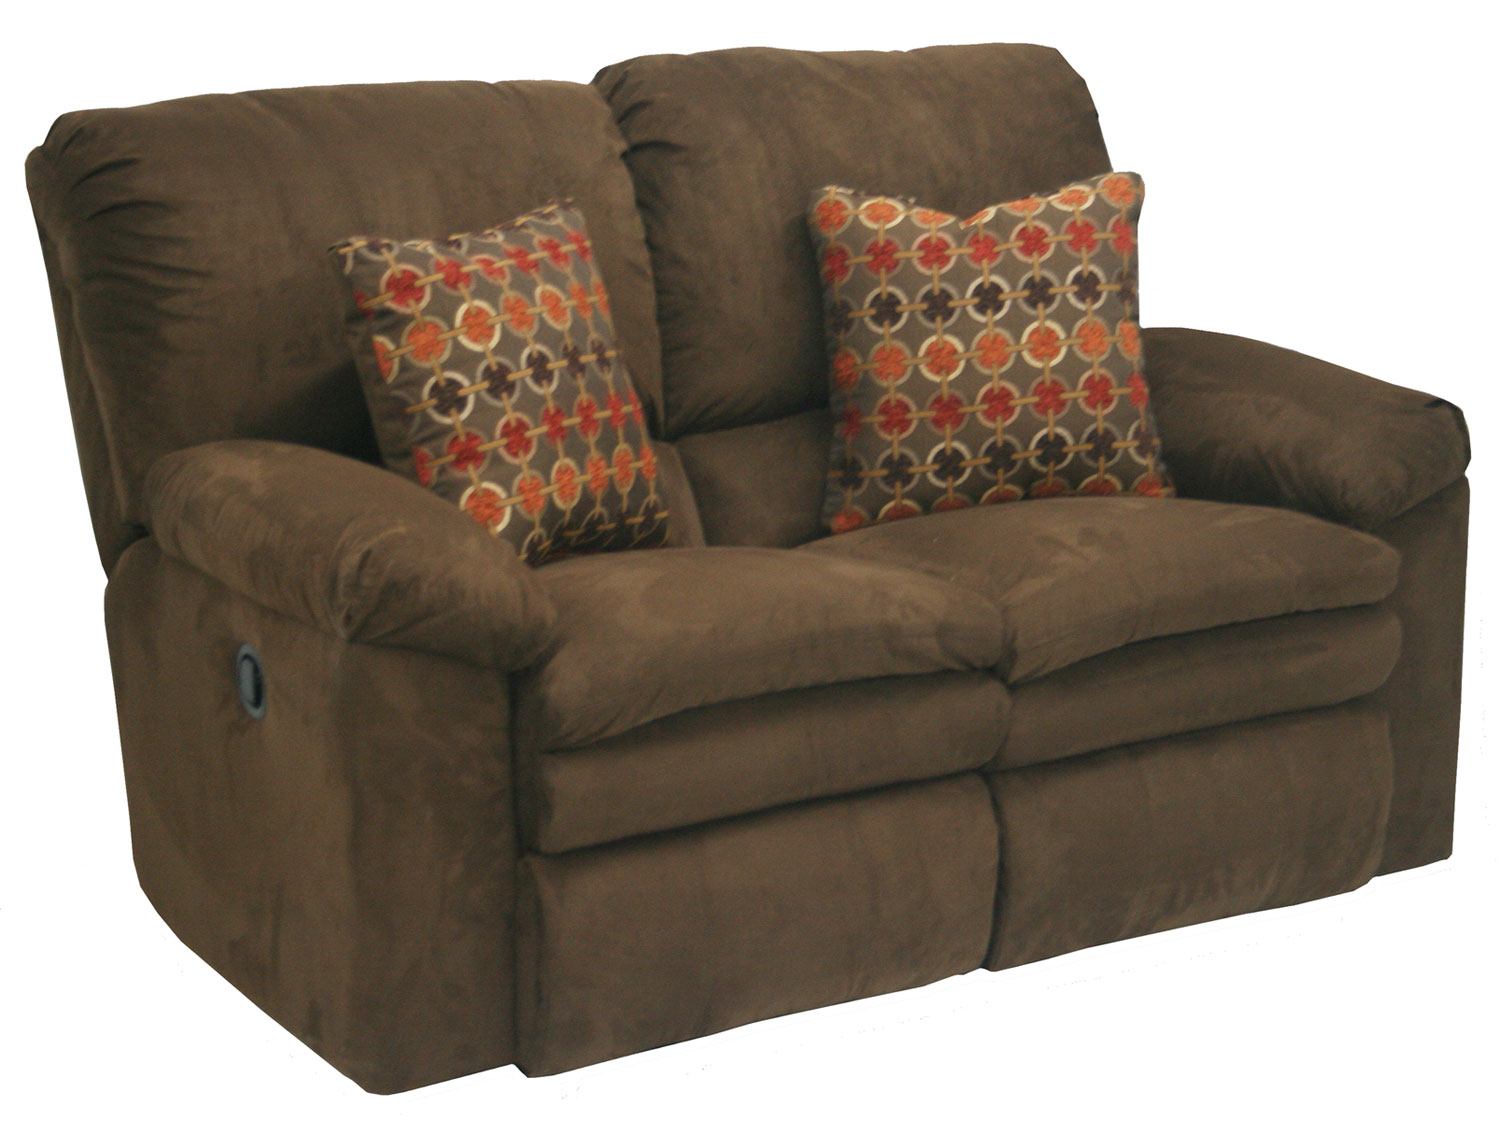 Catnapper Impulse Power Reclining Loveseat Godiva Cn 61242 Godiva